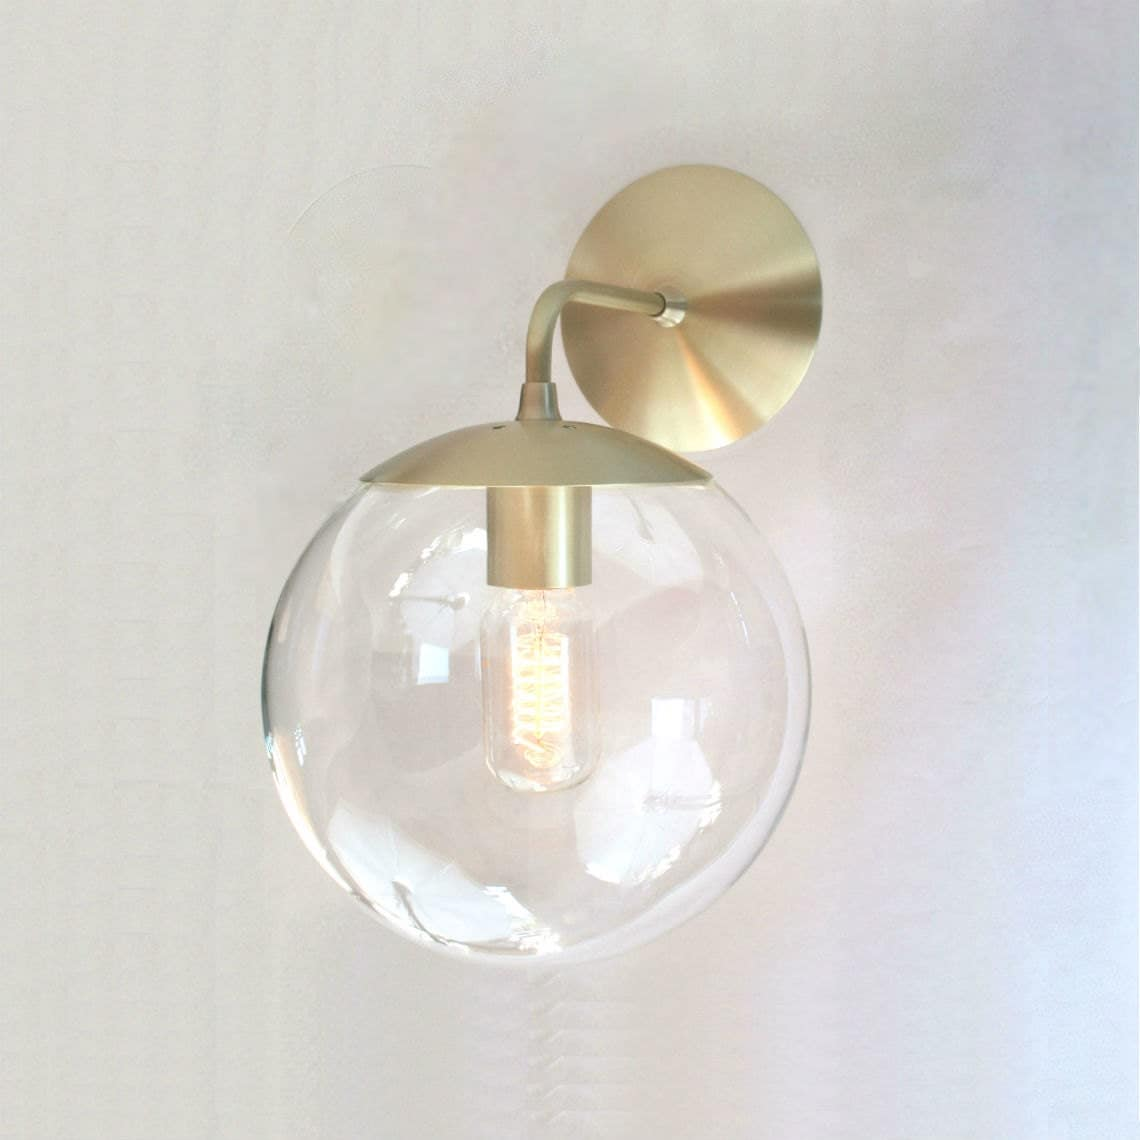 Wall Sconces With Clear Glass : Mid Century Modern Wall Sconce Light 8 Clear Glass Globe